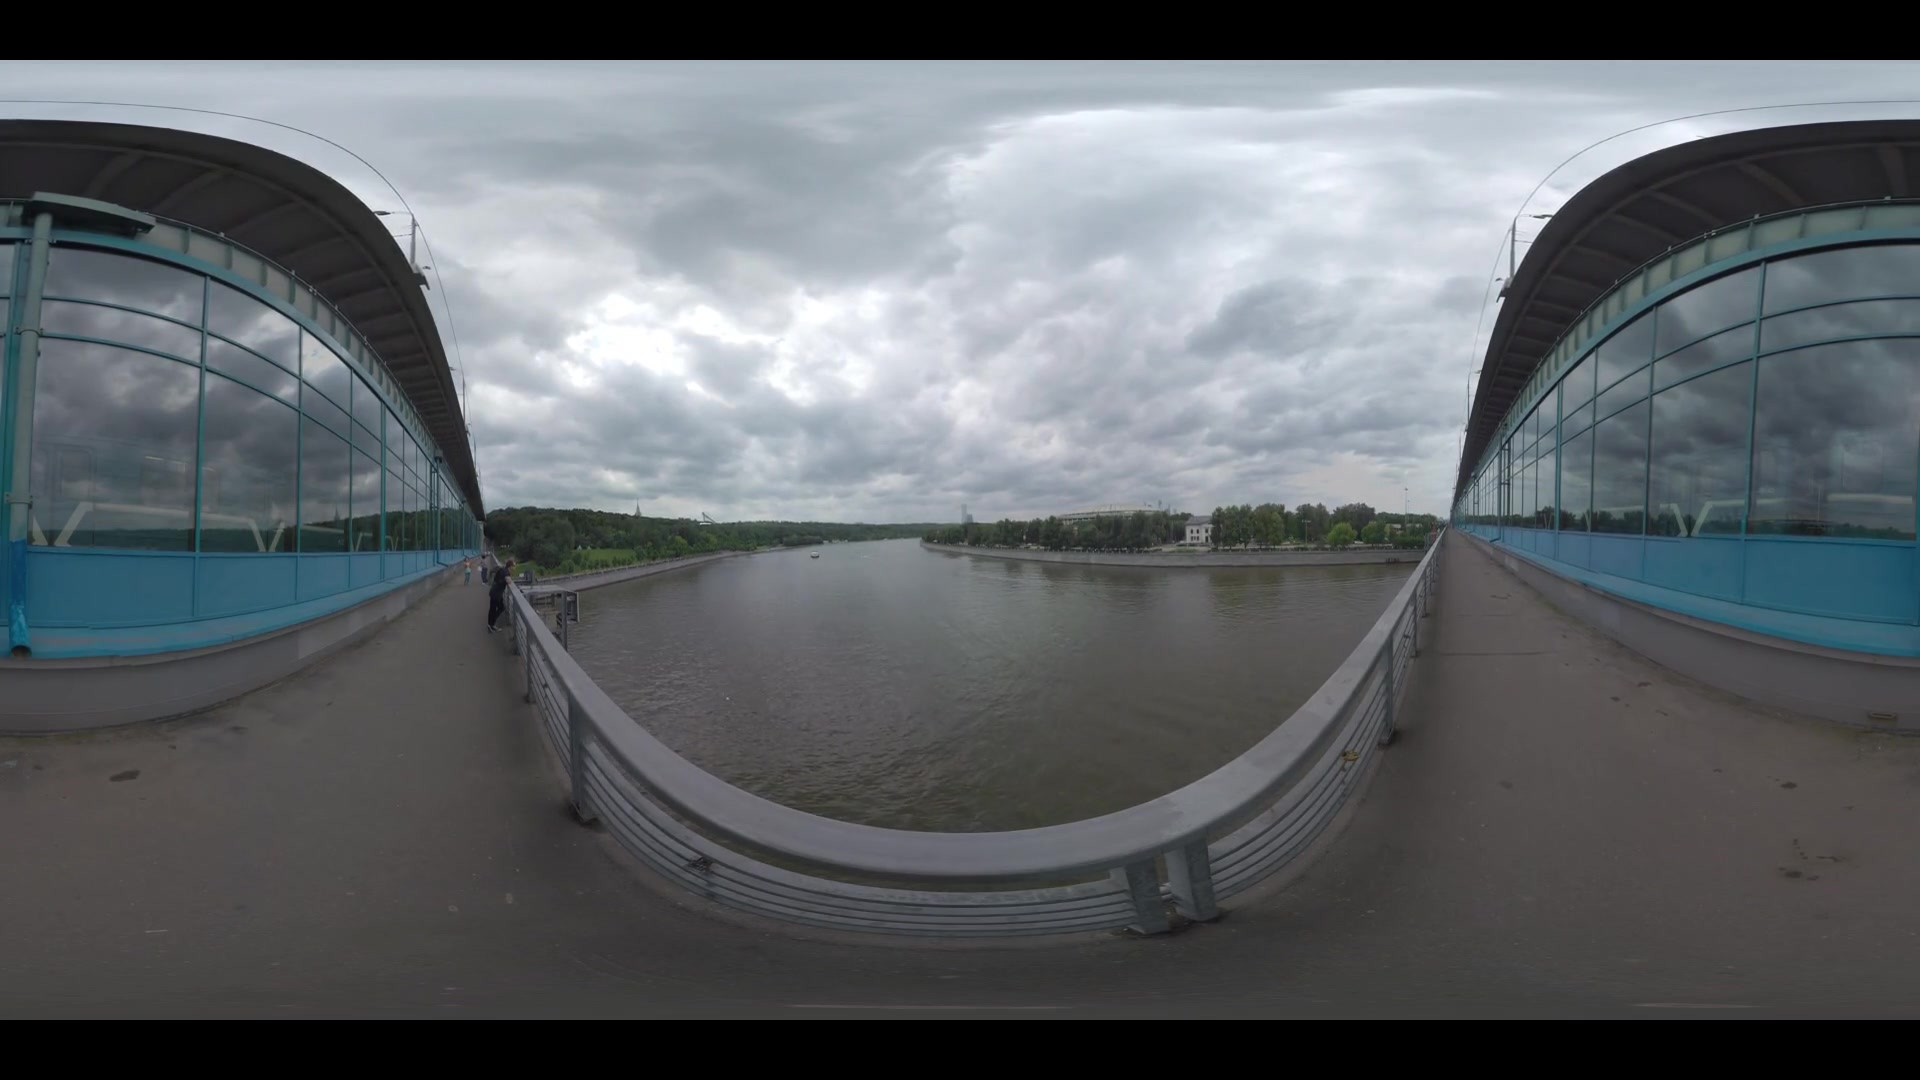 MOSCOW, RUSSIA - JUNE 21, 2016: 360 VR video. People walking across Luzhniki Metro Bridge with subway train running there. Cityscape with Moskva river. Metromost connects the neighbourhood of Luzhniki Stadium to Sparrow Hills